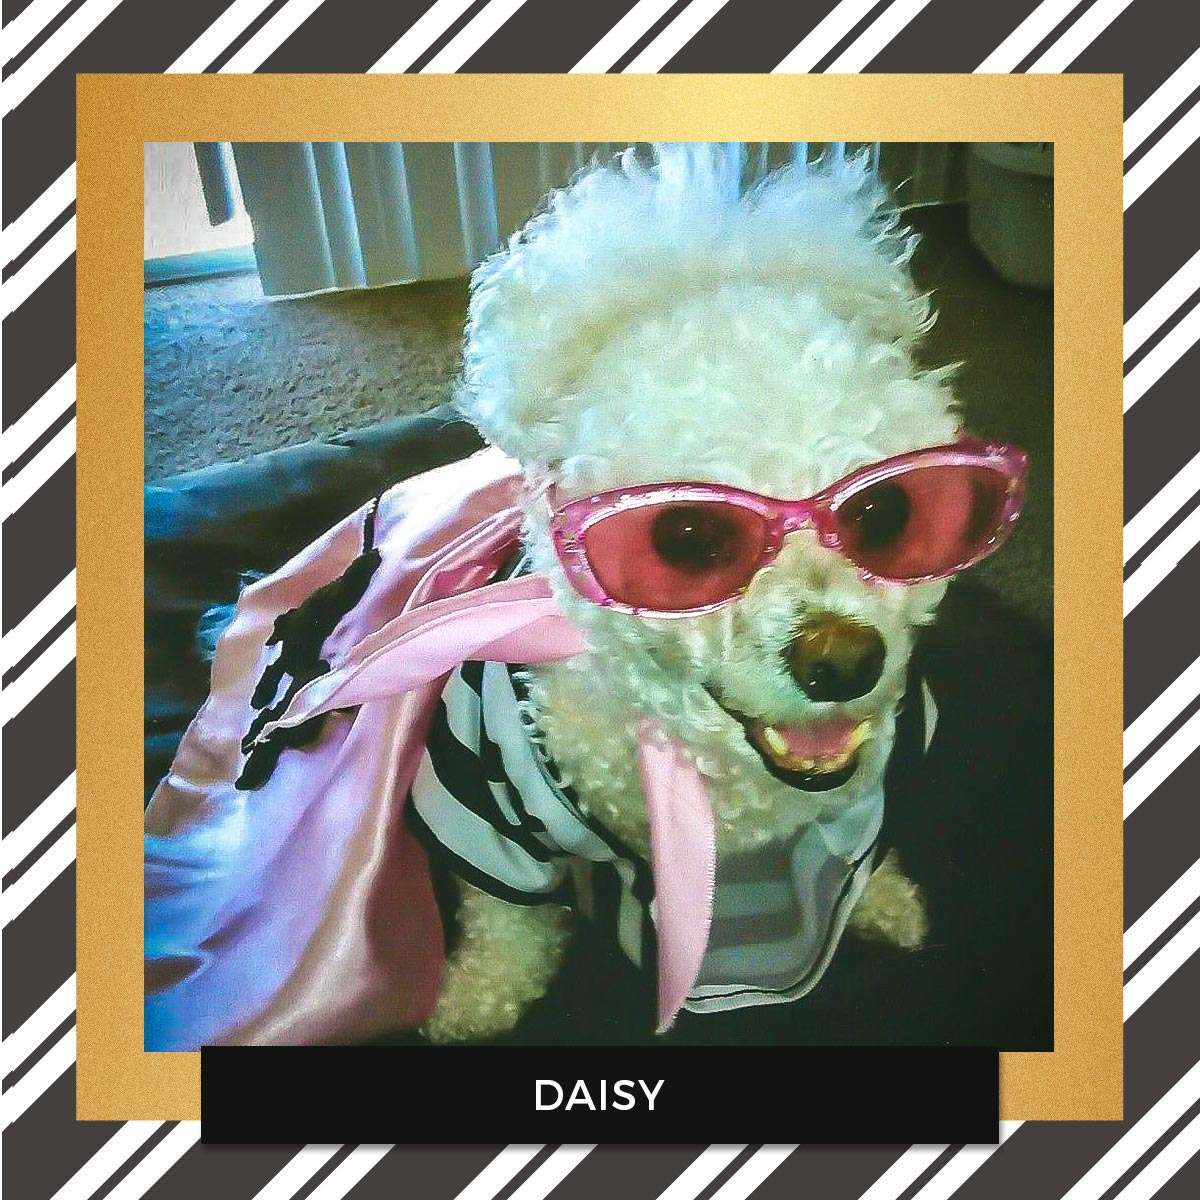 Daisy - Halloween Pet Costume Contest Entry